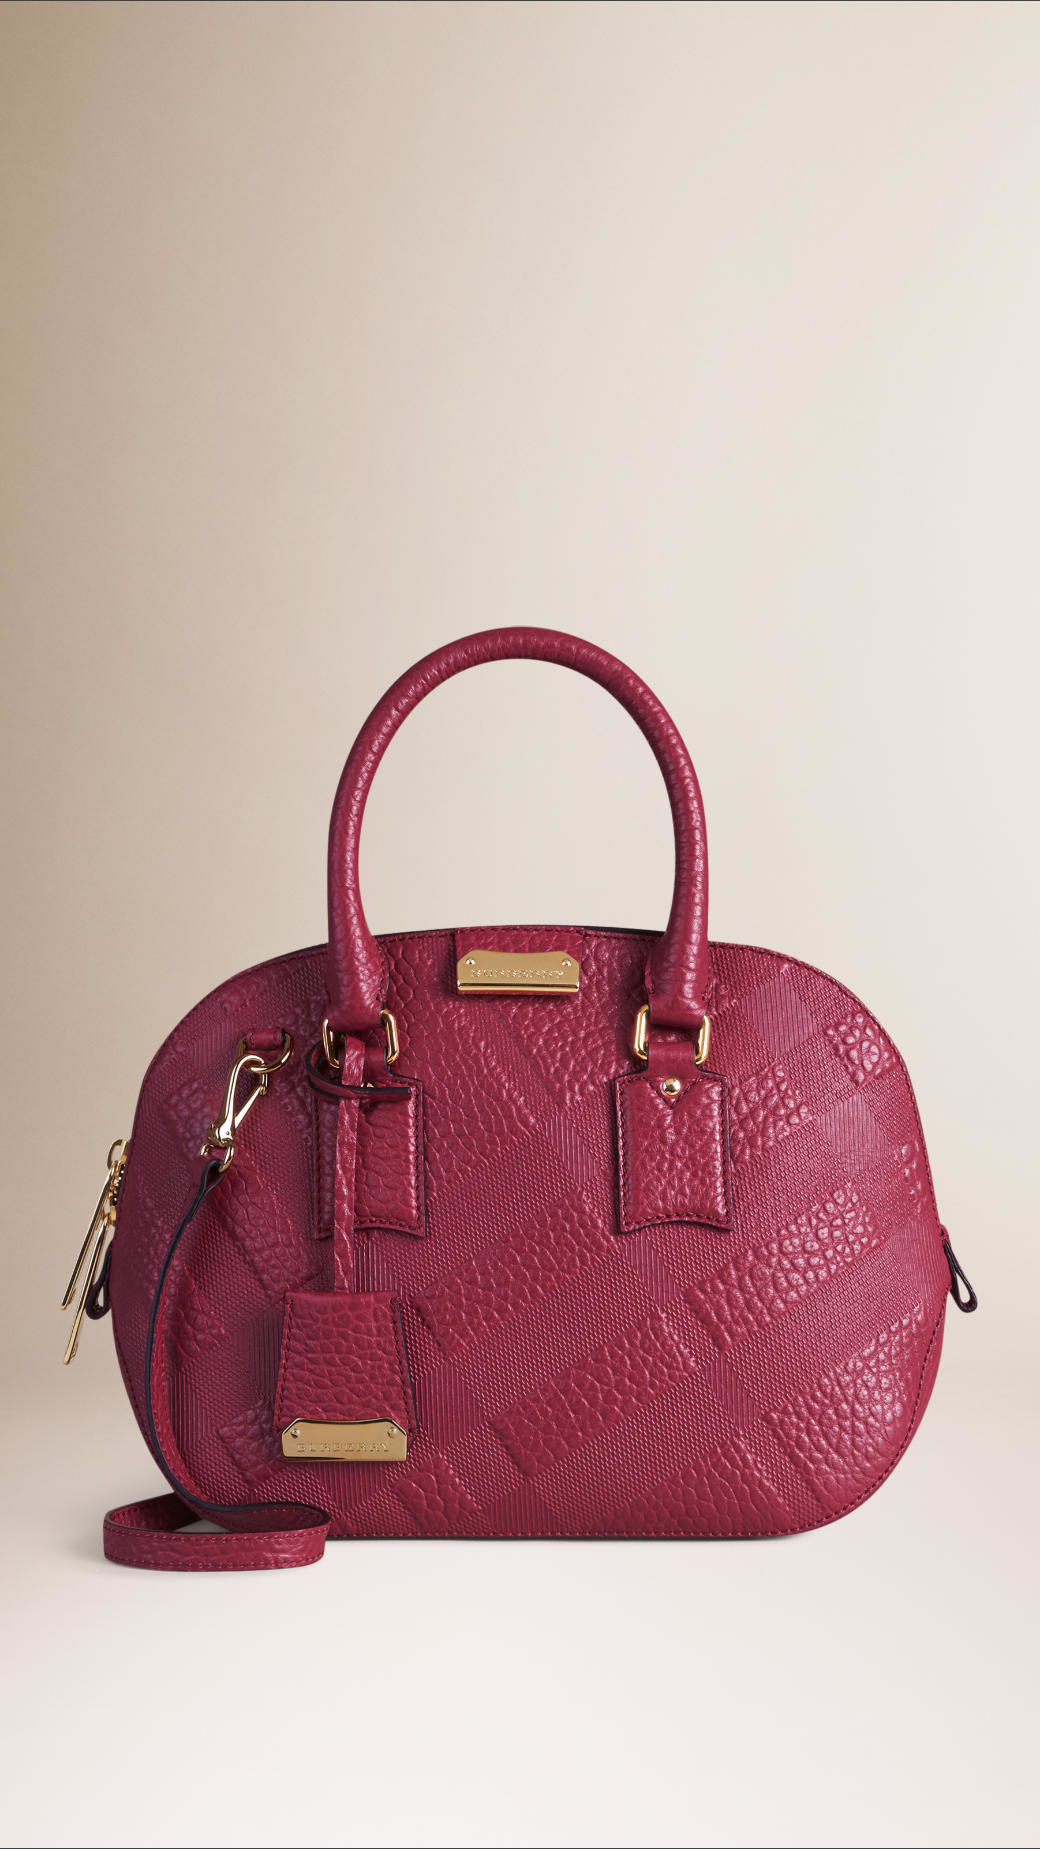 82a763a98d9d Burberry The Small Orchard Embossed Check Leather Bag in Purple - Lyst